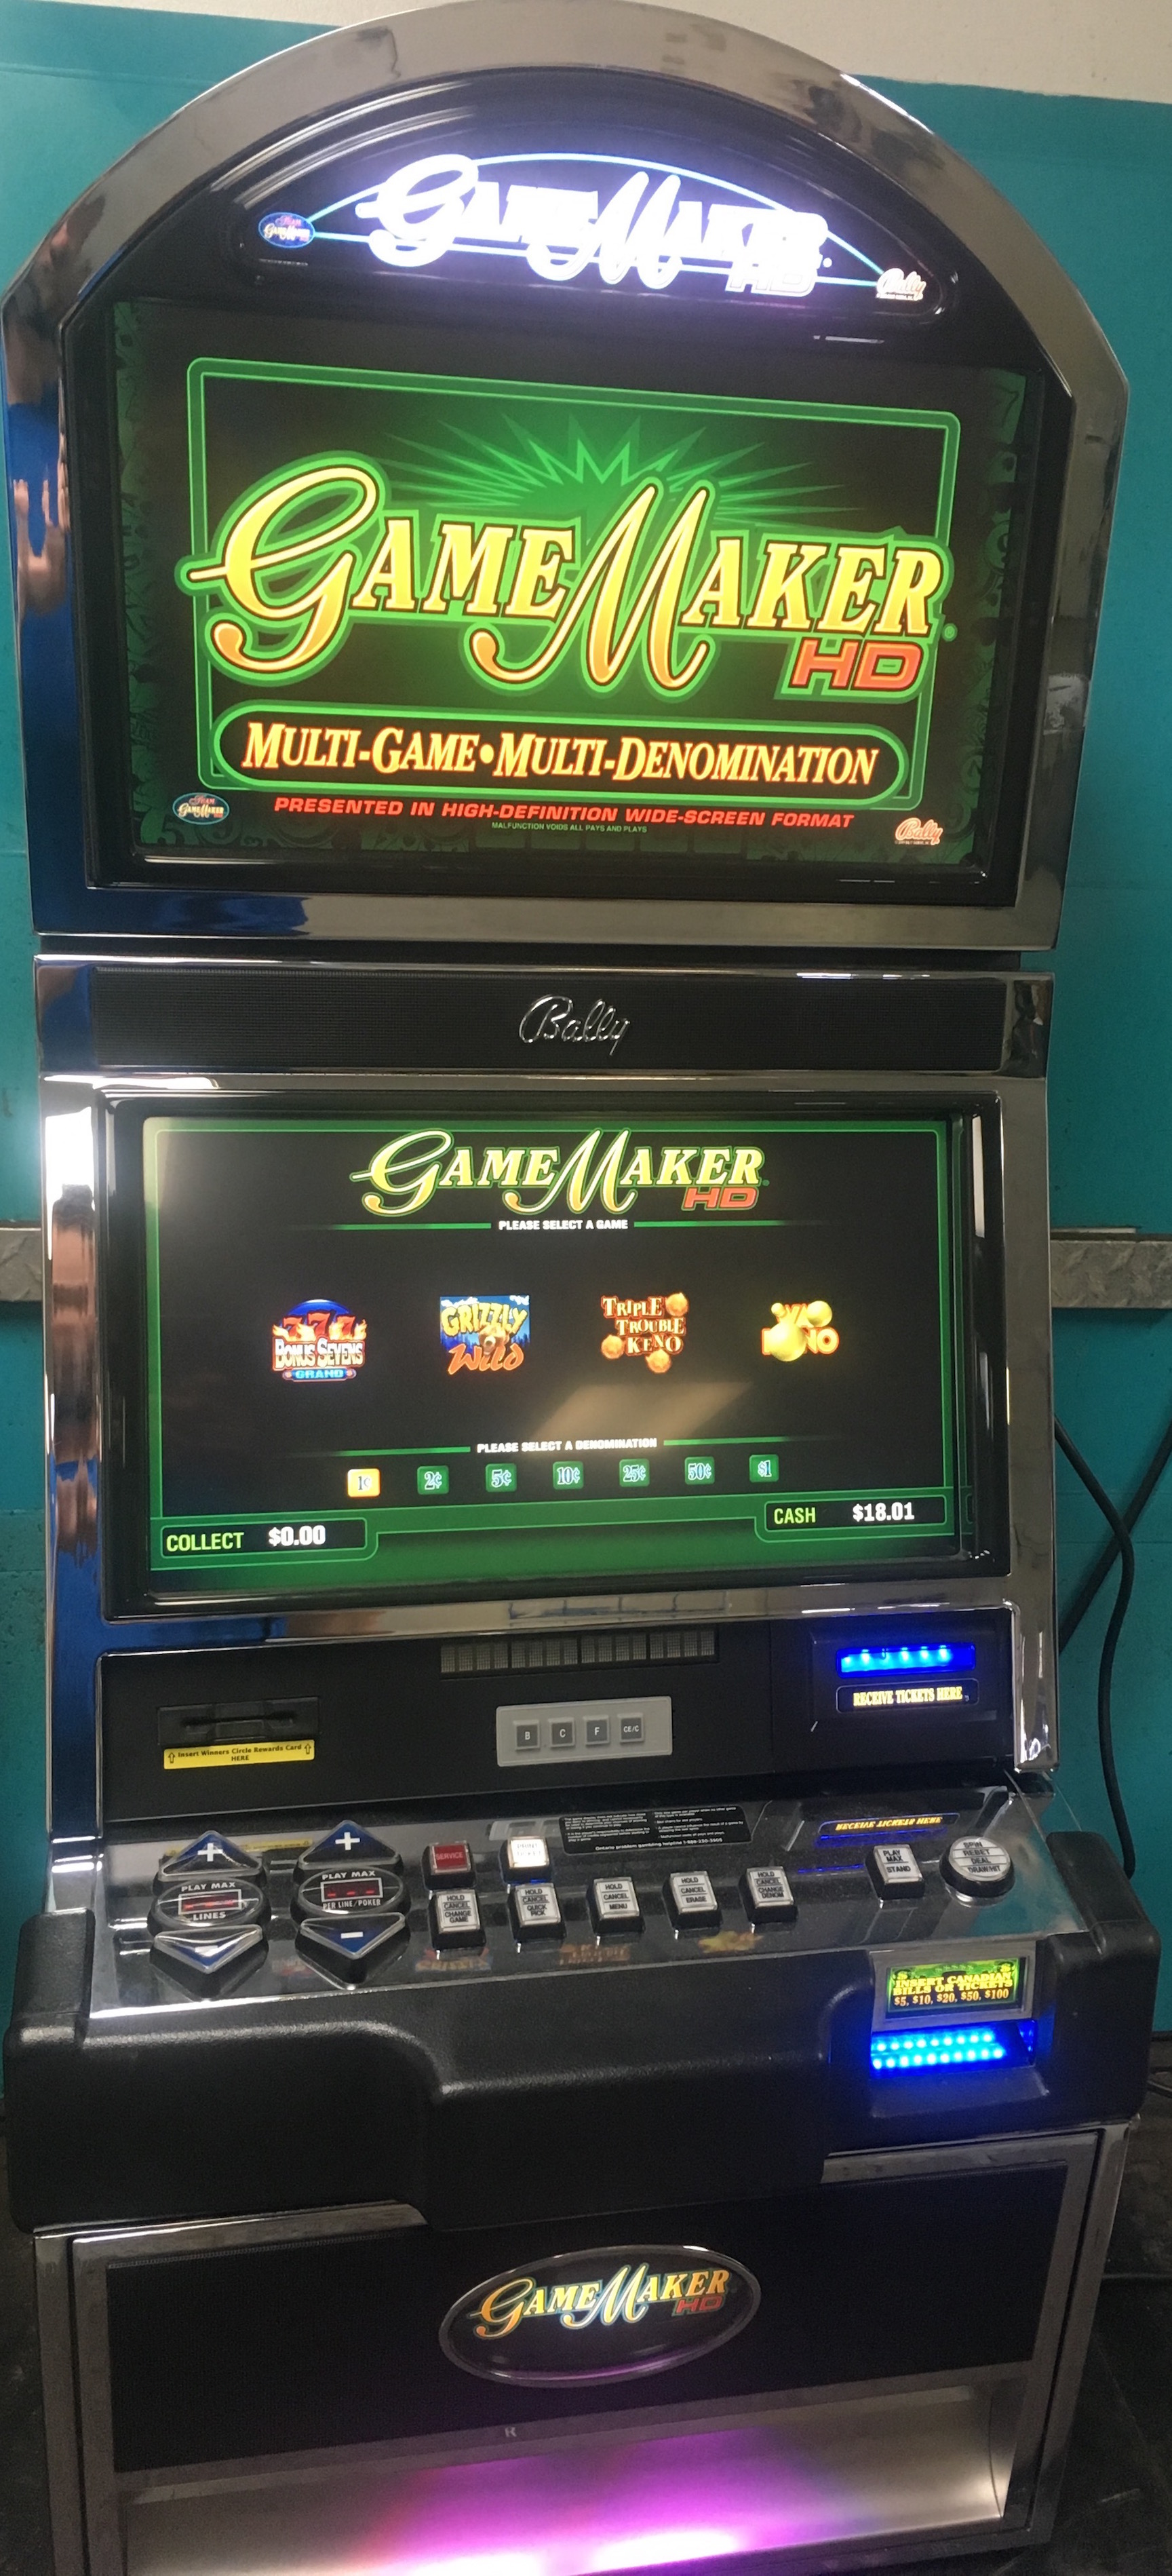 Bally Gamemaker Hd Slot Machines Unlimited